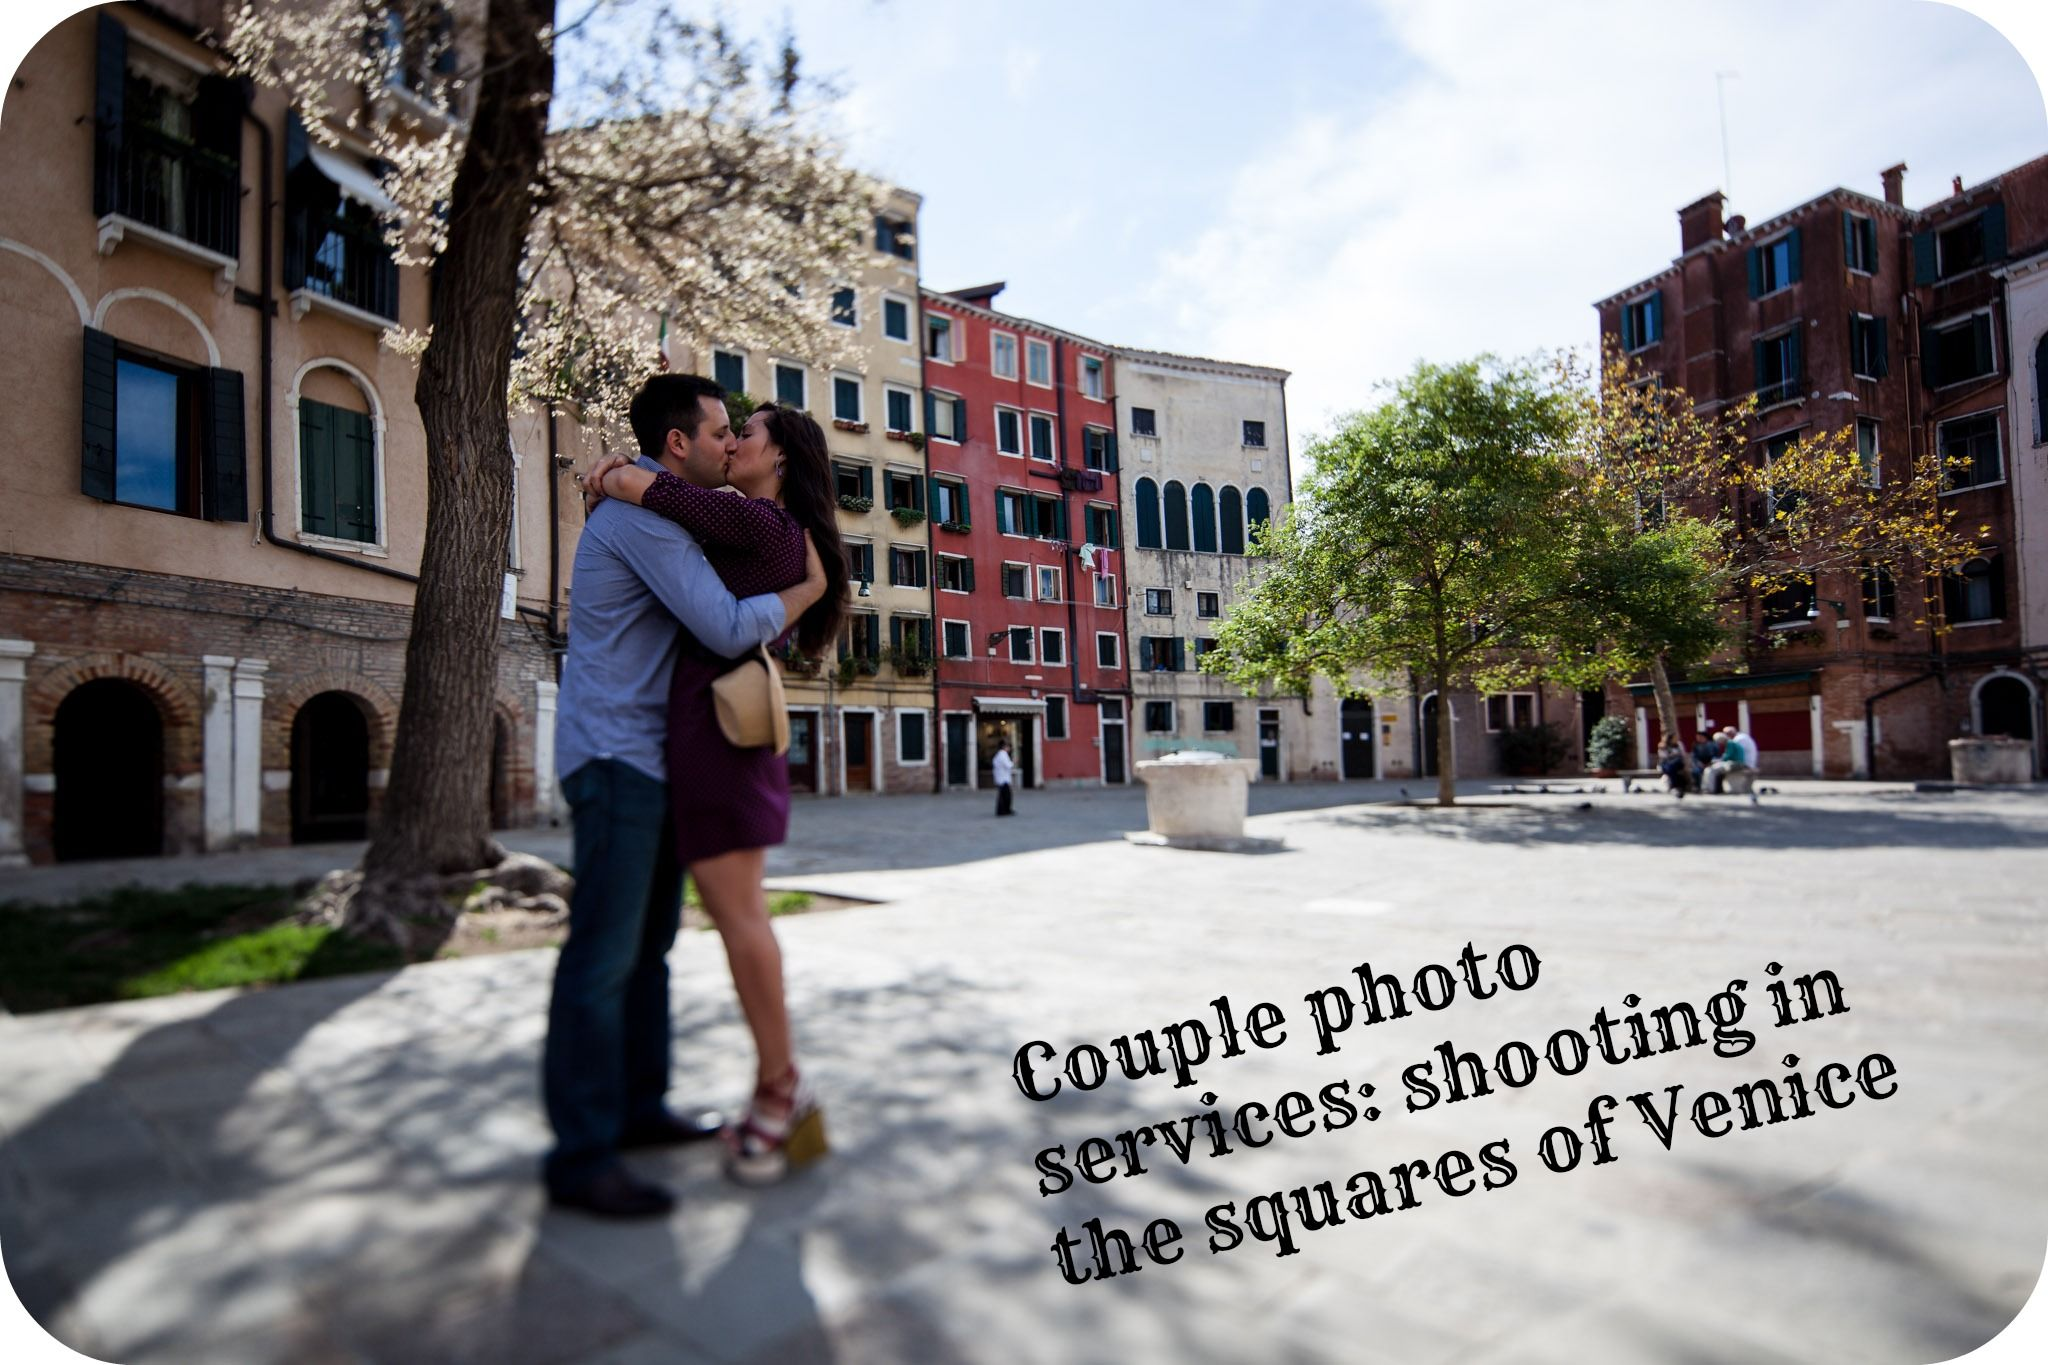 Capturing couples in the squares of #Venice: a few examples of couple #photoportraits http://blog.photographervenice.com/2013/08/17/couple-photo-portraits-squares-venice/